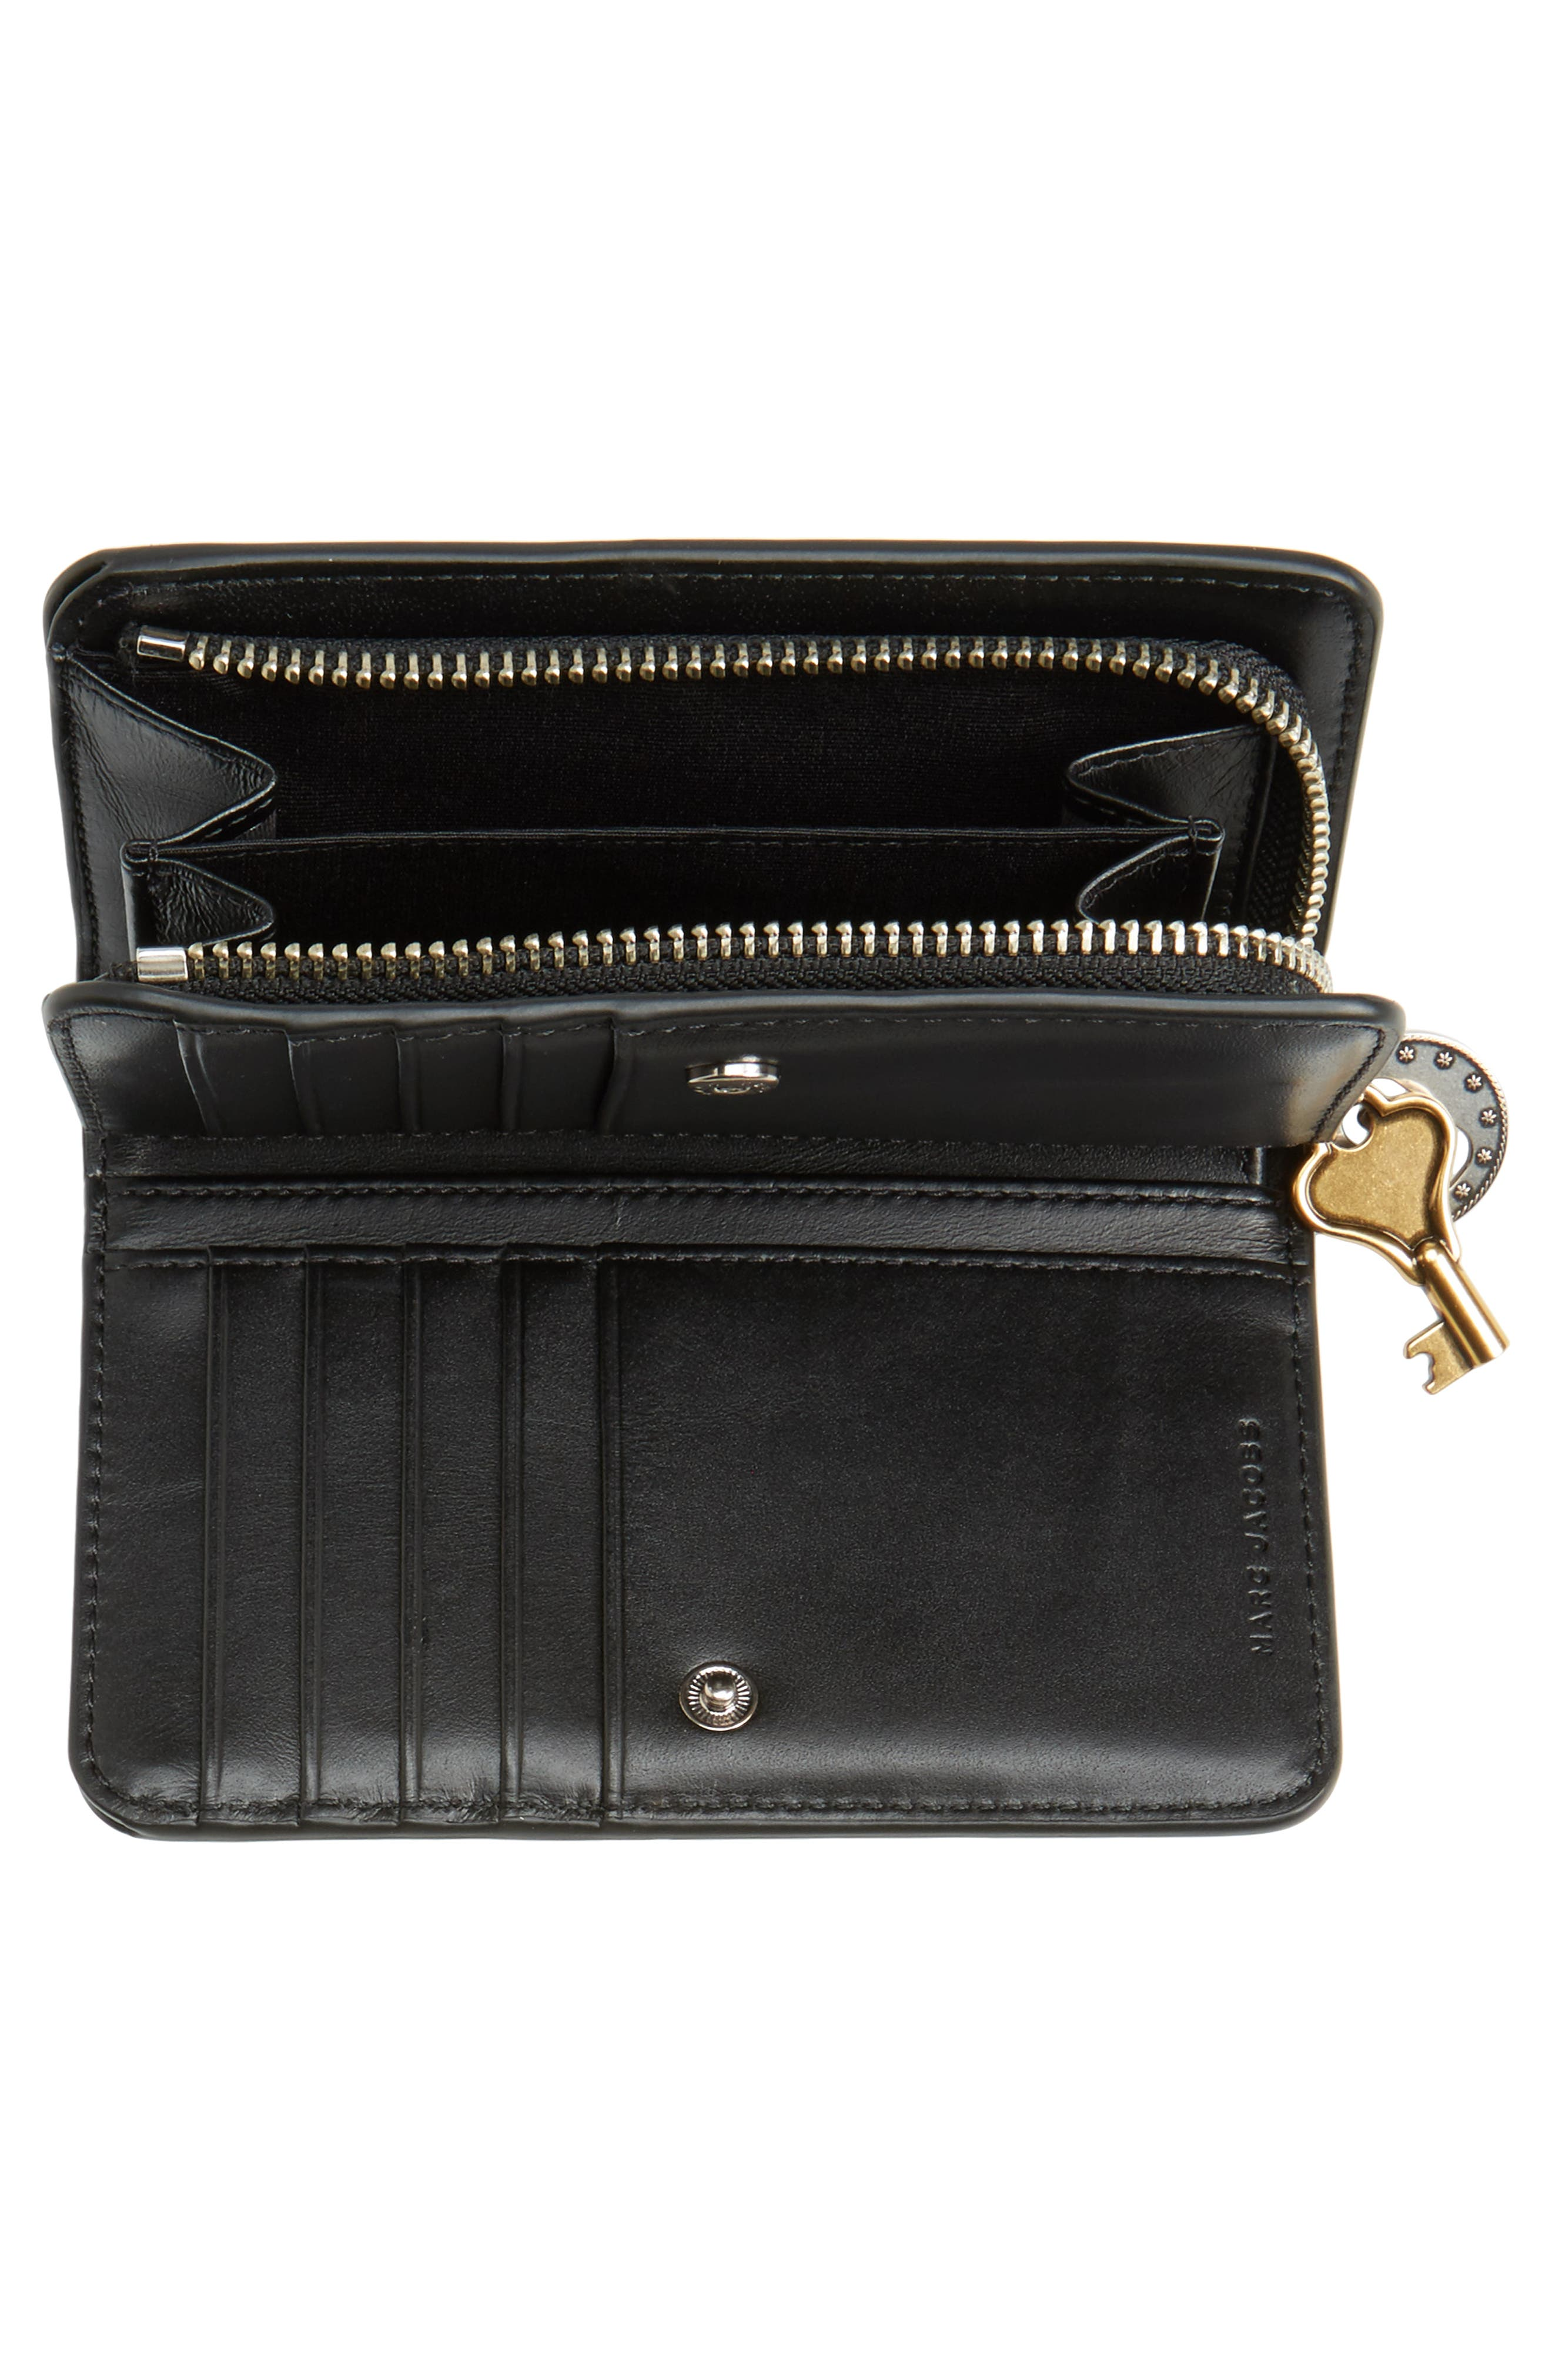 Saffiano Leather Compact Wallet,                             Alternate thumbnail 4, color,                             410